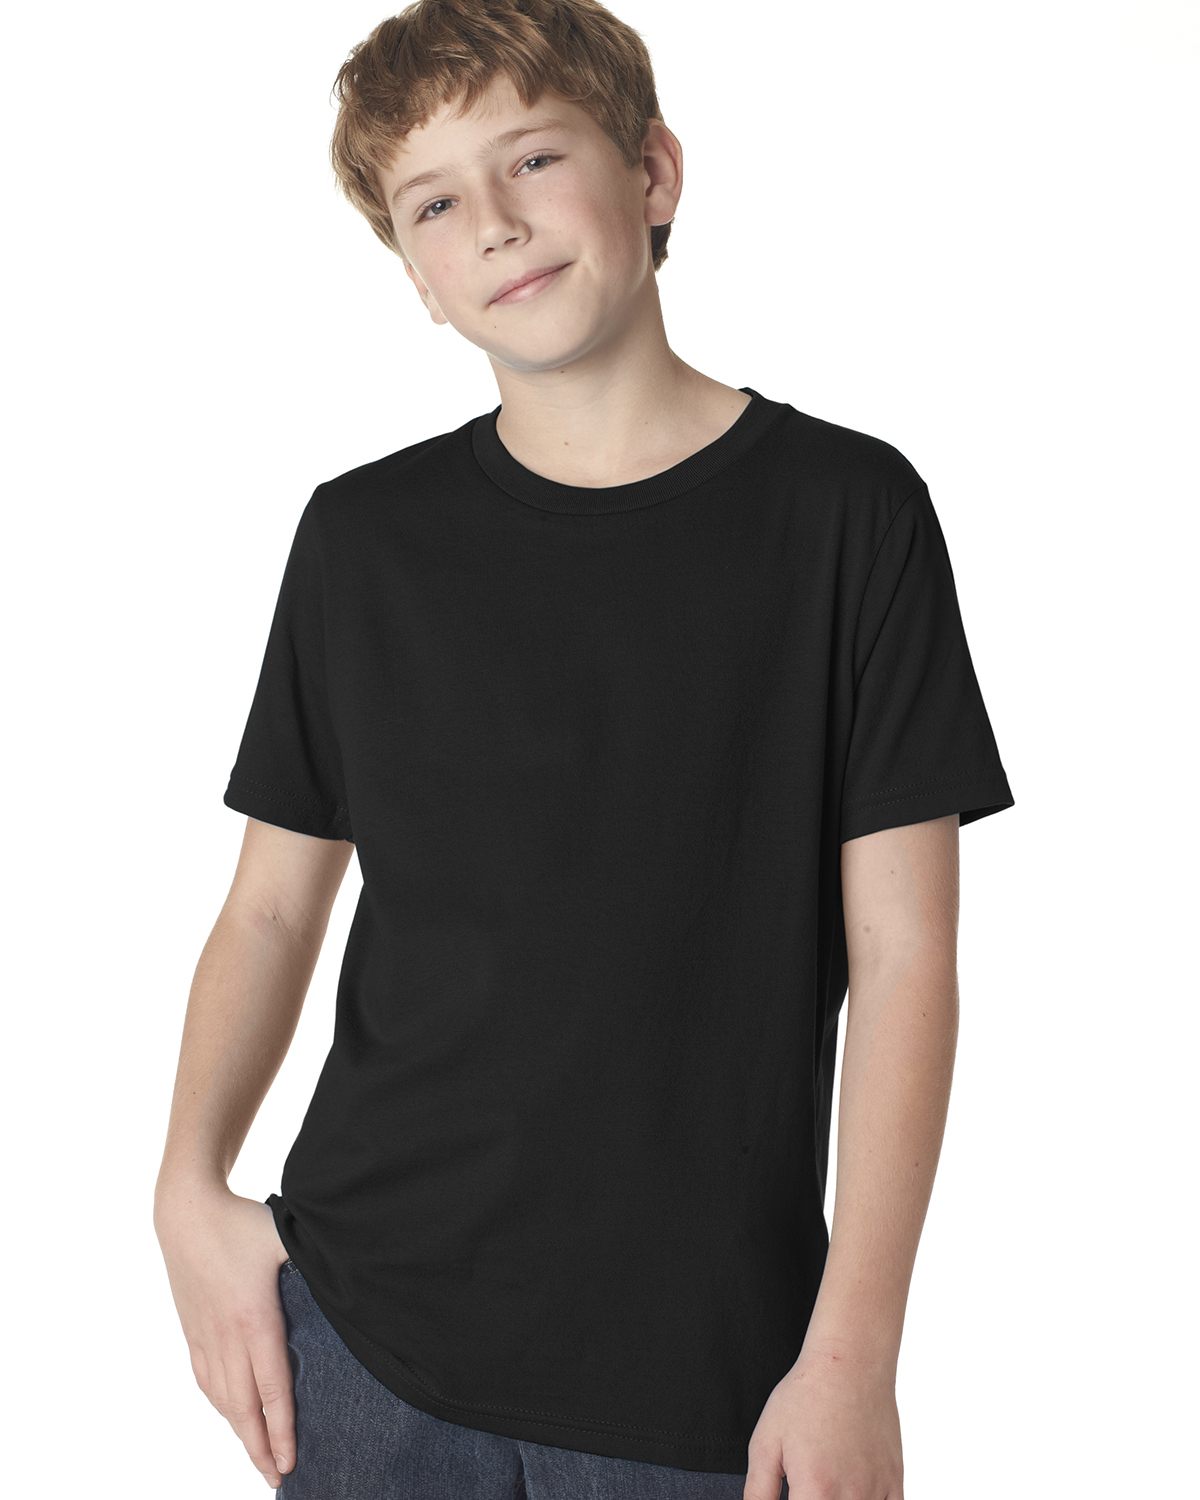 Next Level 3310 - Boy's Short-Sleeve Crew